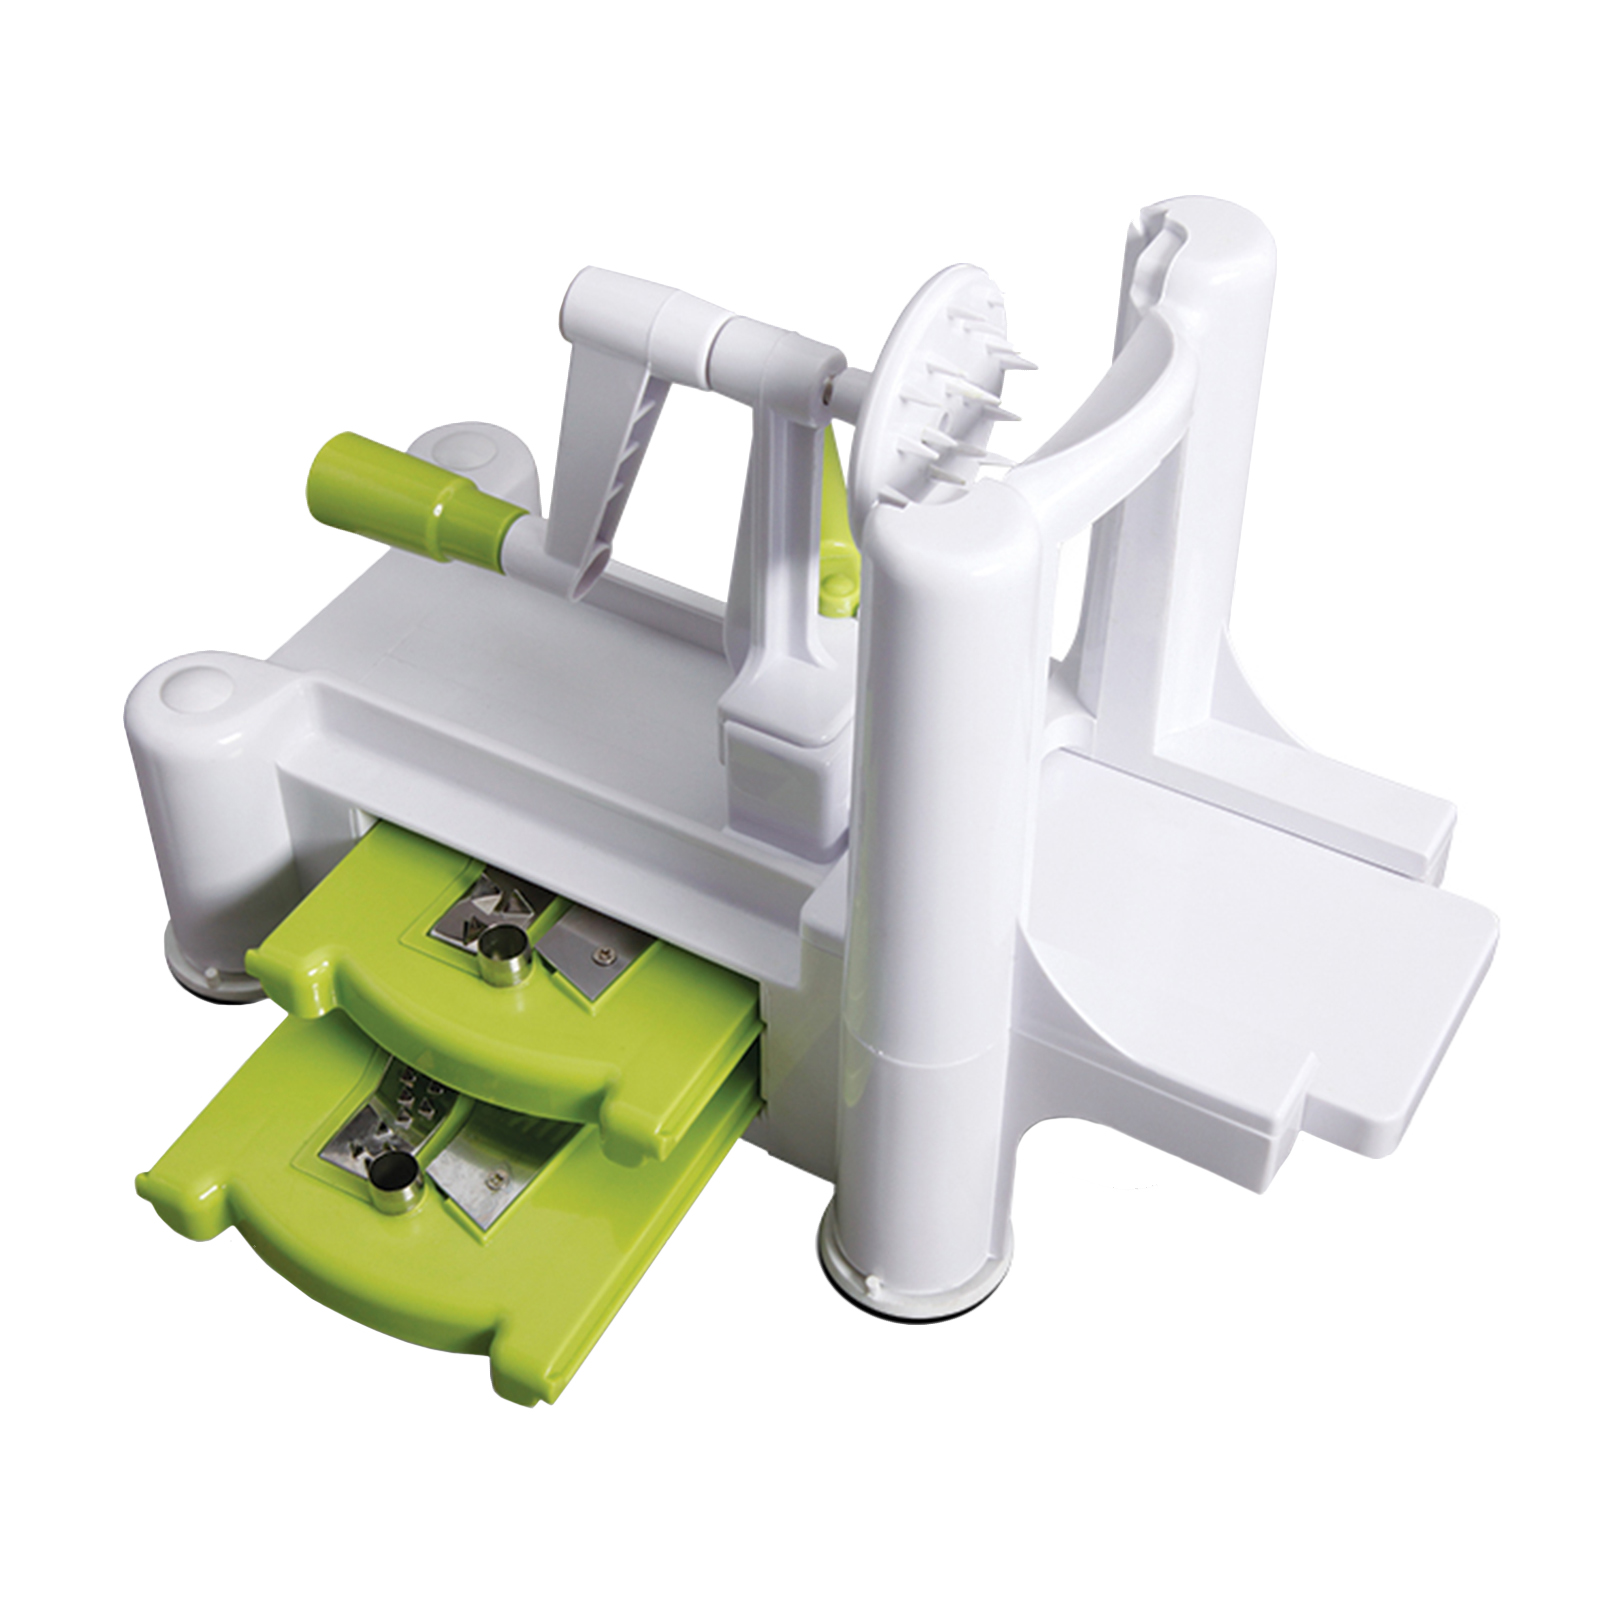 Image of Oster Kitchen Artistry 4-Piece Spiralizer Slicing & Grating Tools, Lime Green